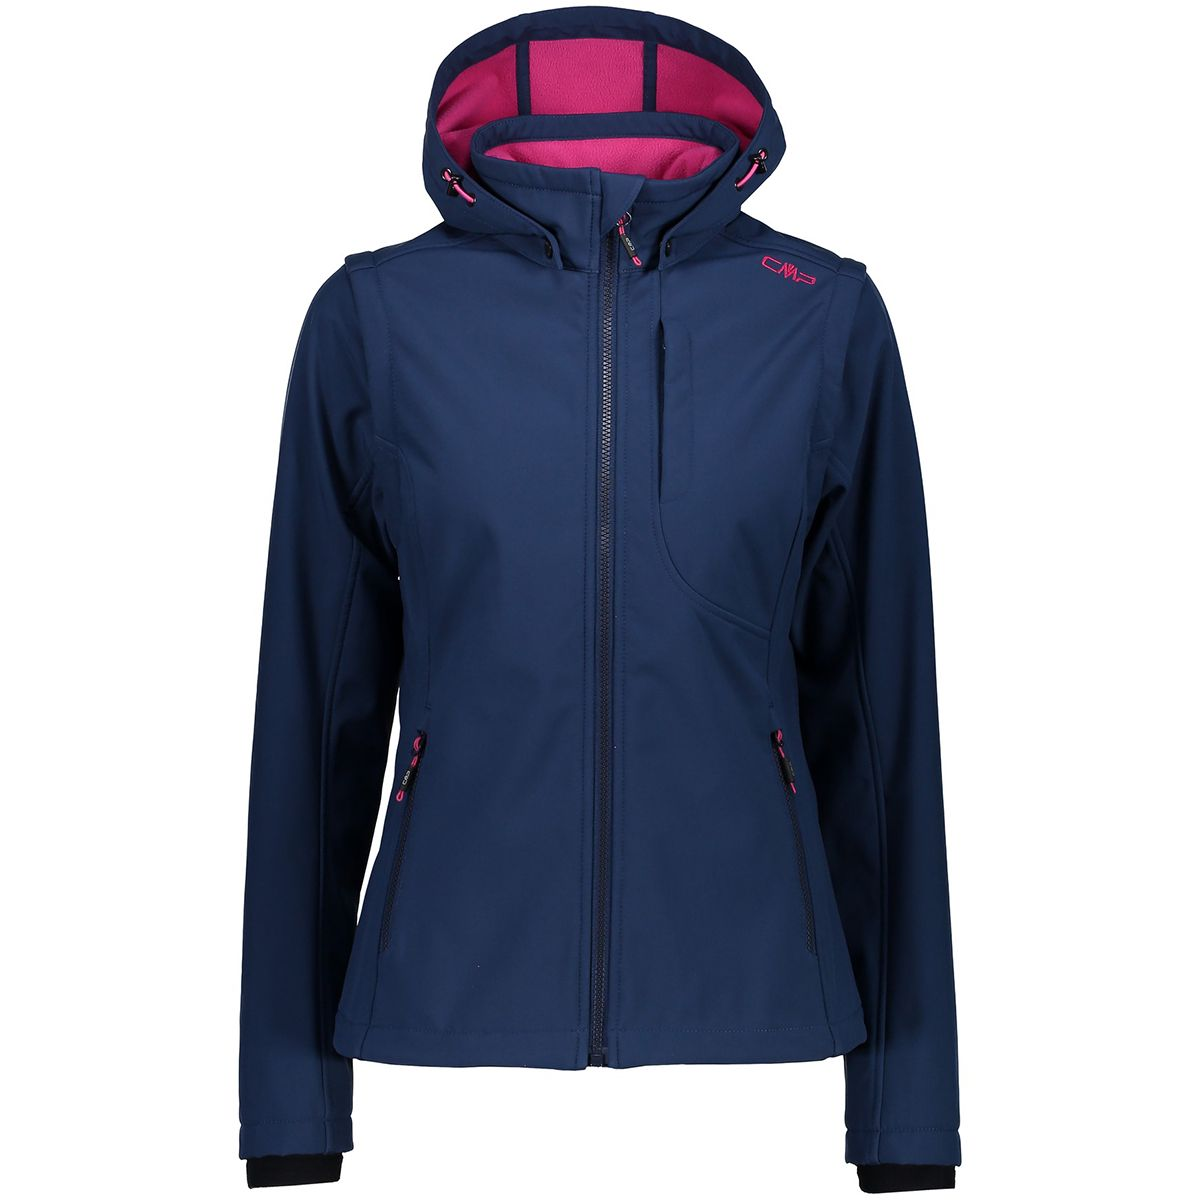 CMP Damen Softshell Zip Off Jacke (Größe M, Blau) | Softshelljacken > Damen